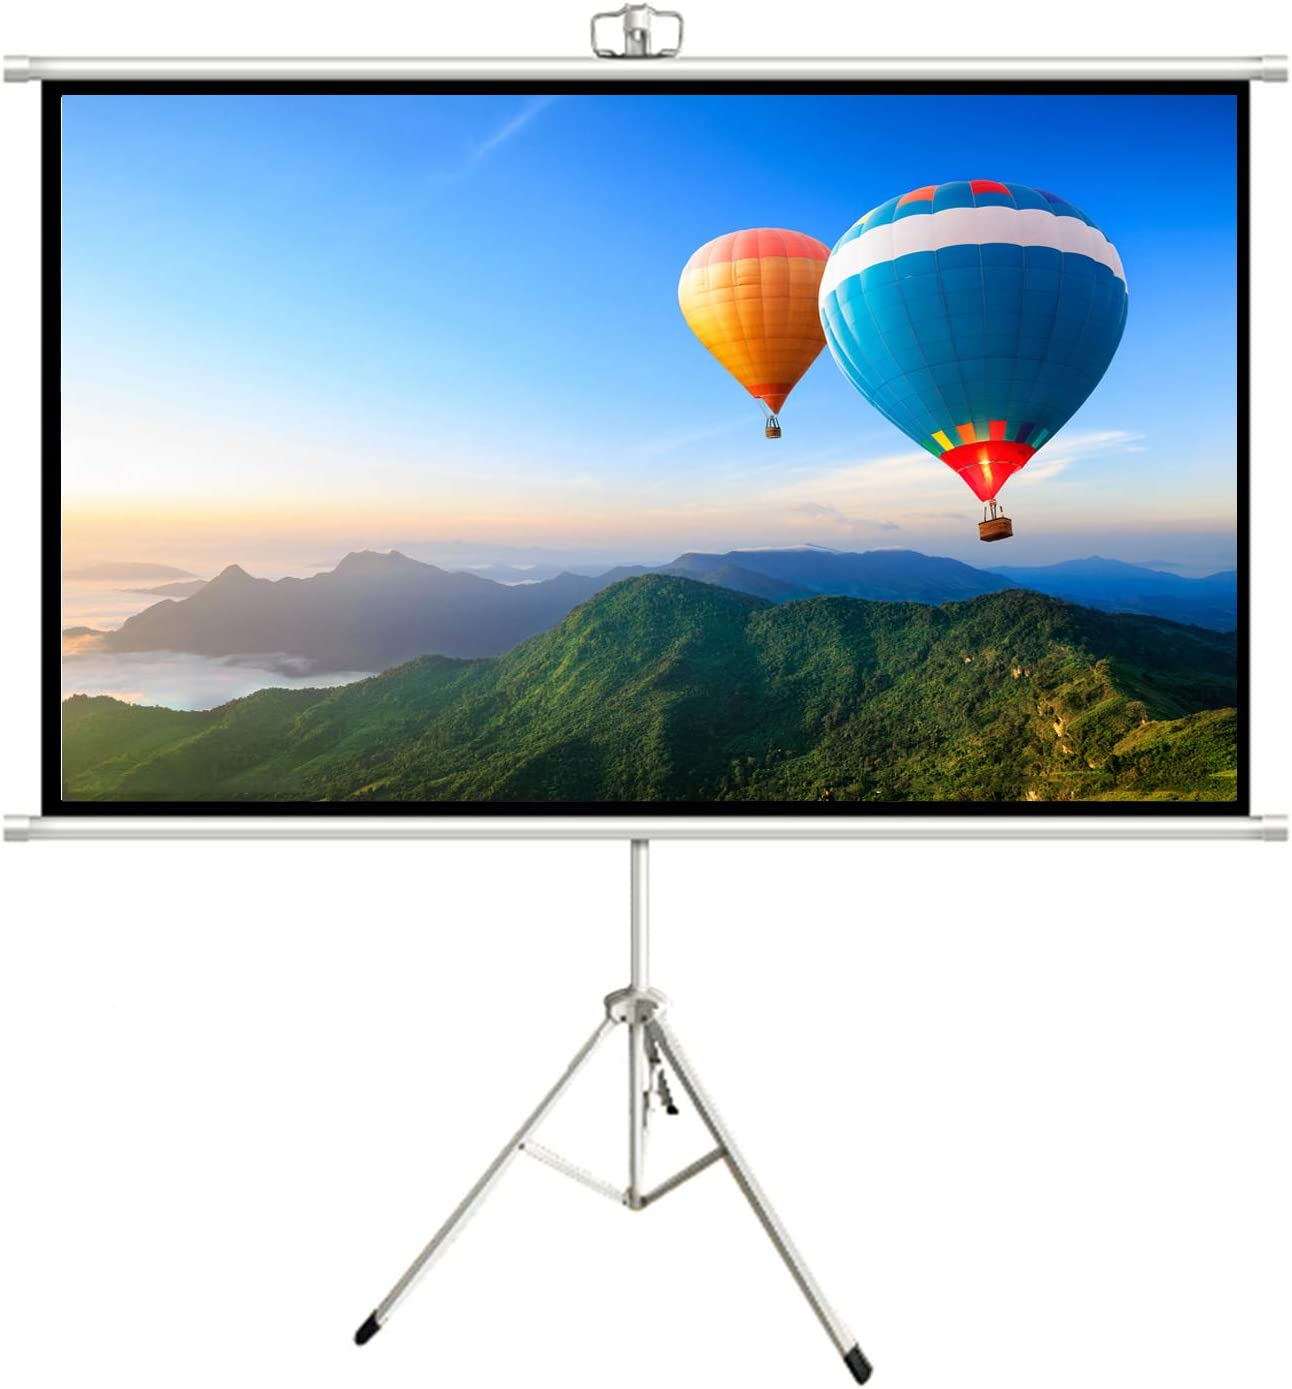 160°Viewing Angle Projector Screen Very Suitable Home Party Office Classroom, Stand Stand Projection Screen High Contrast Crease-Free Movie Screens